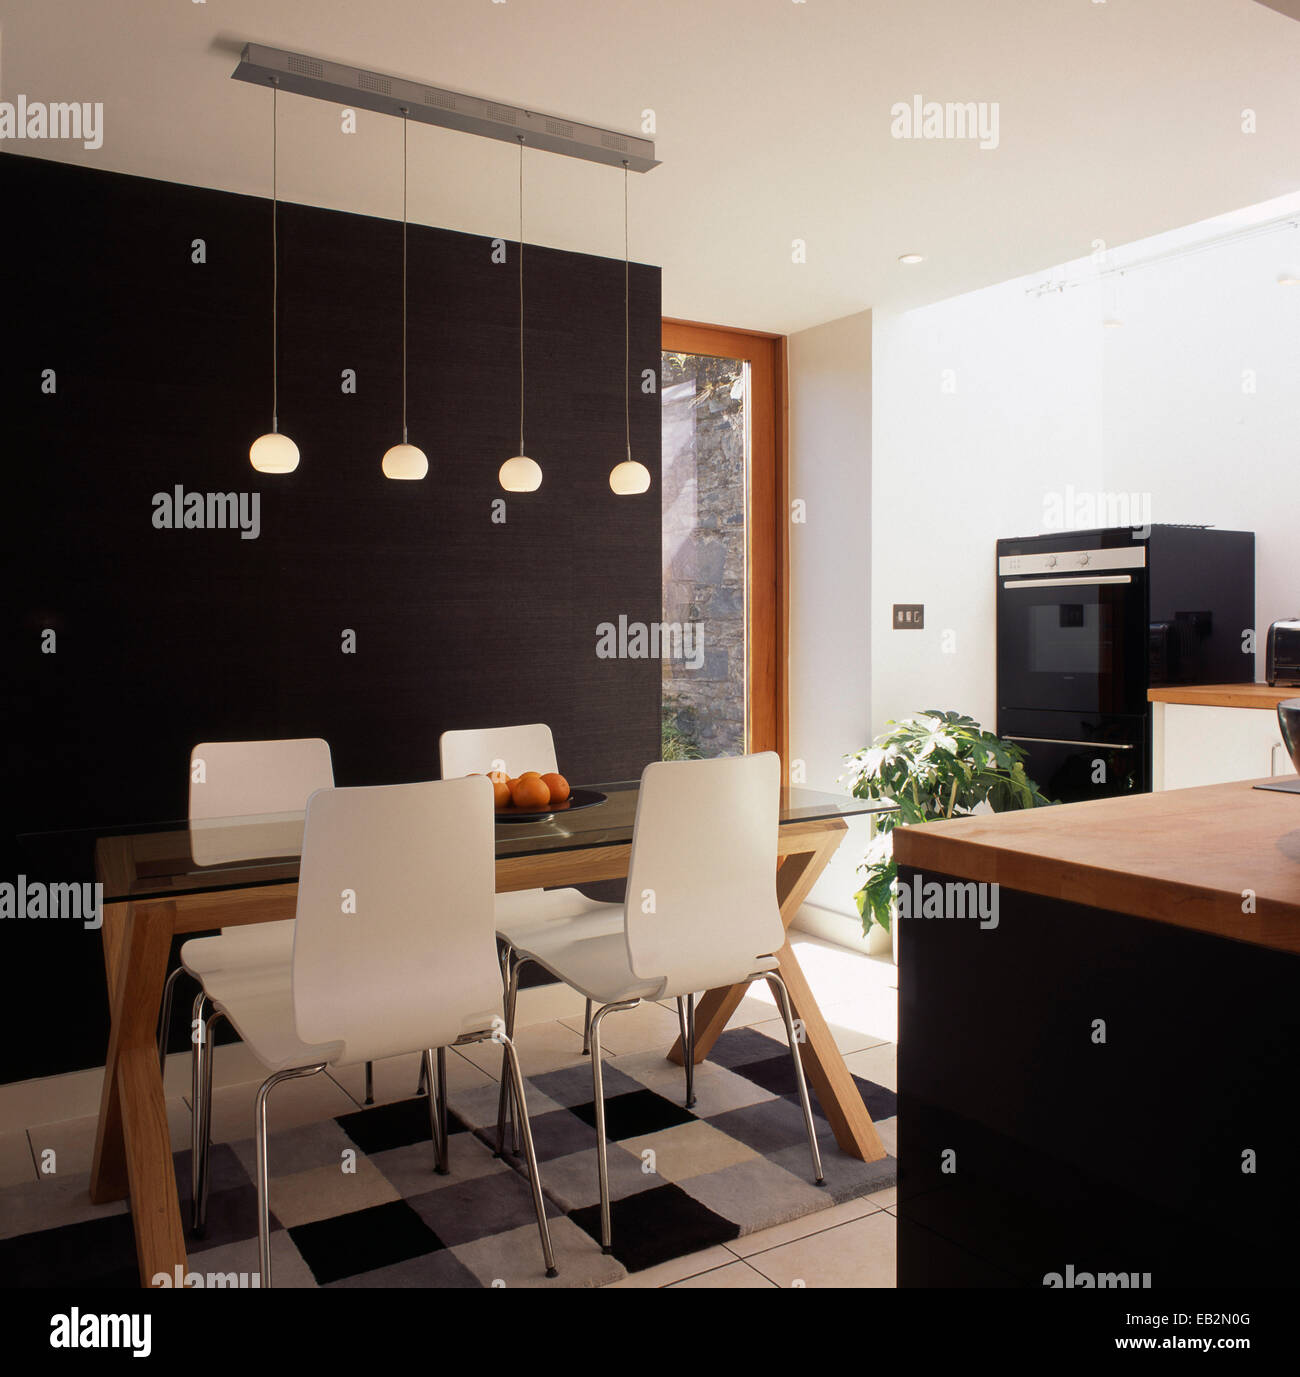 Modern kitchen with dining table and chairs in The Grainstore, Perthshire, Scotland - Stock Image